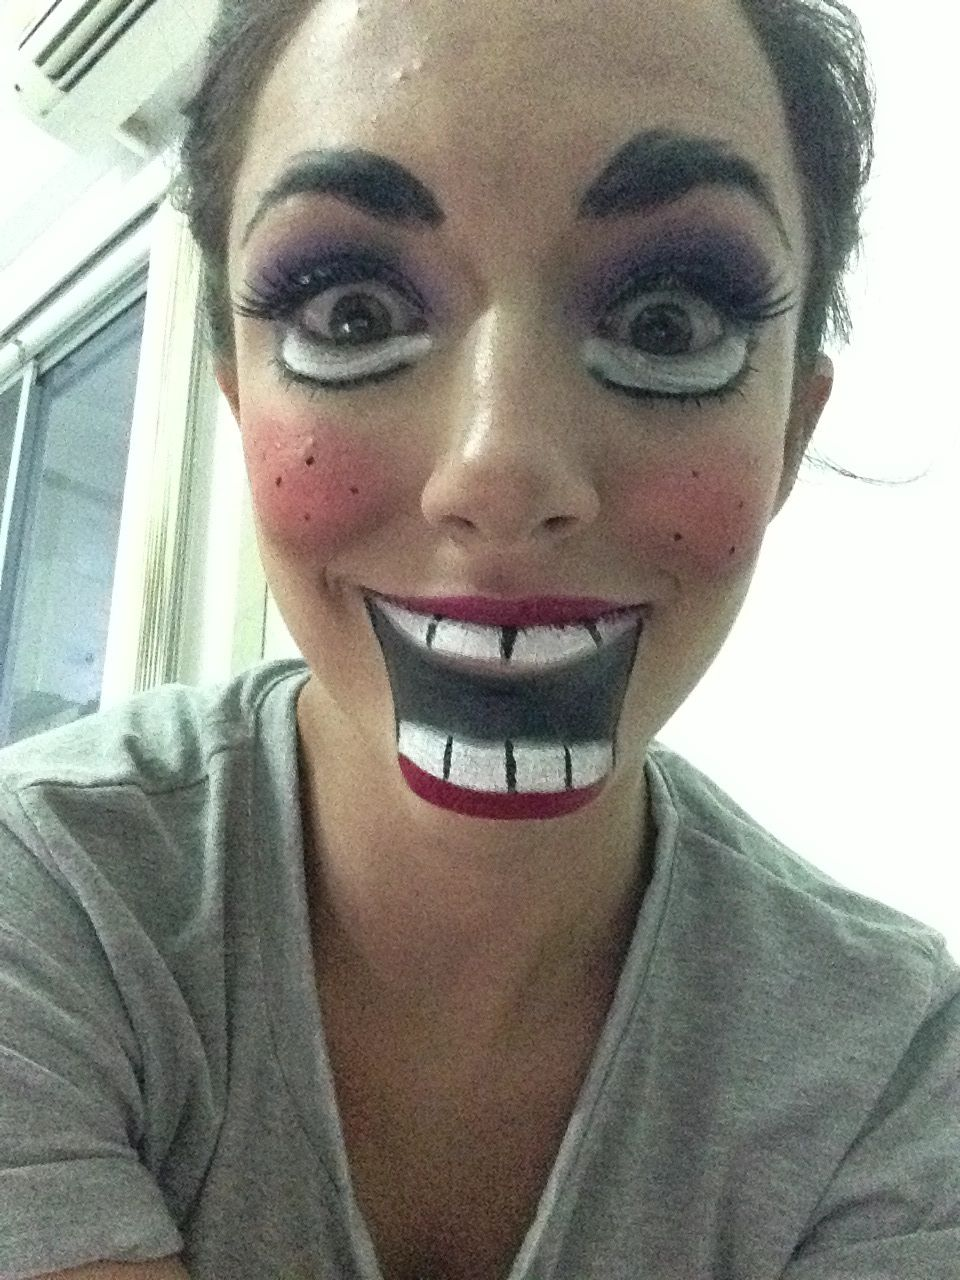 scary china doll, halloween makeup ideas | haunted house in 2018